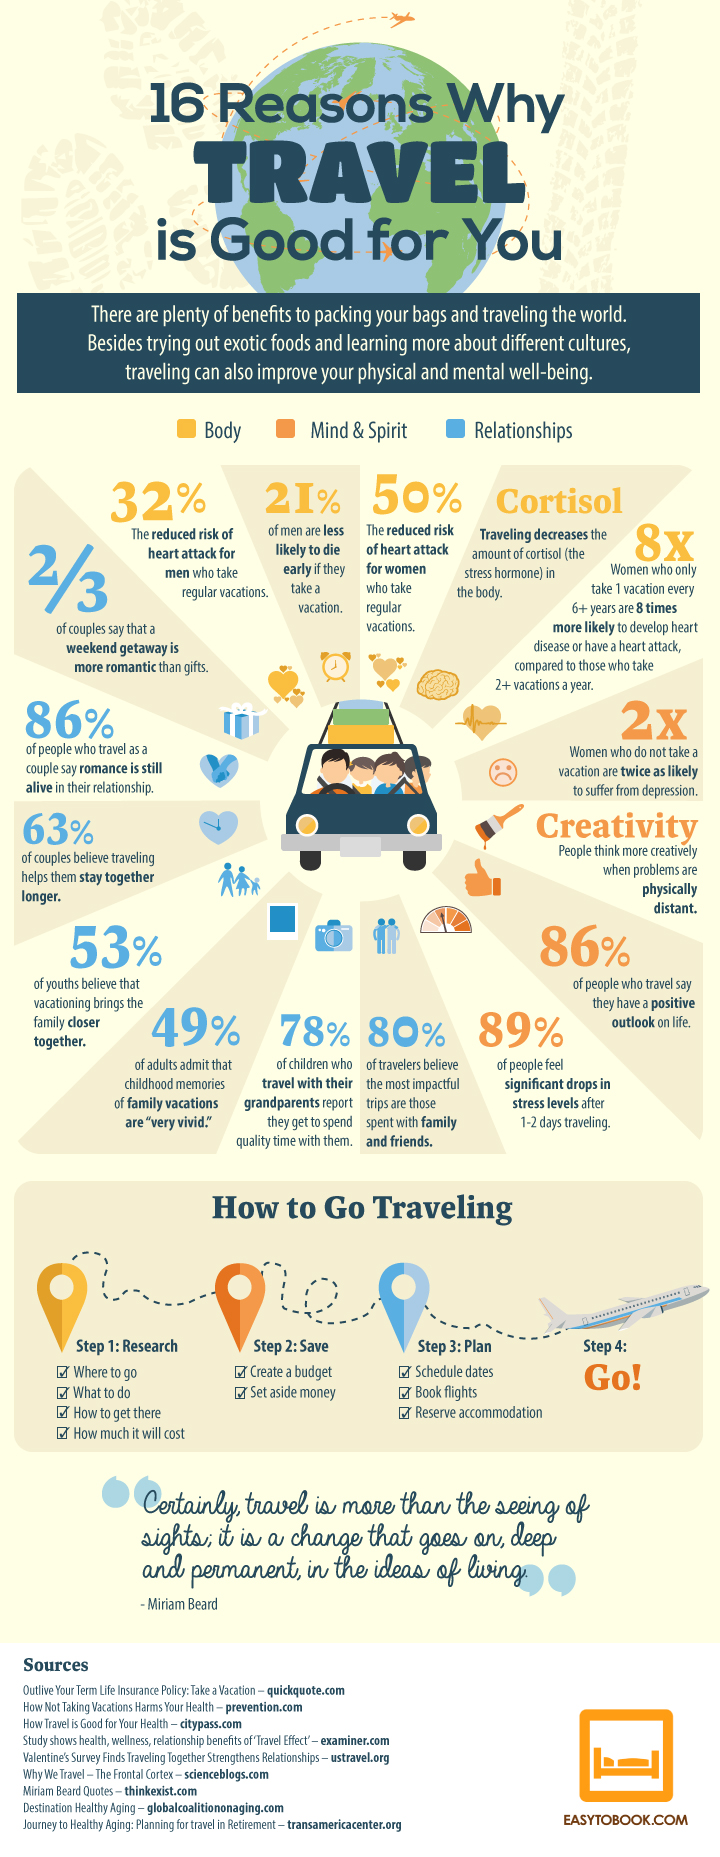 Traveling is Always Good: Here's 16 Reasons Why - Infographic